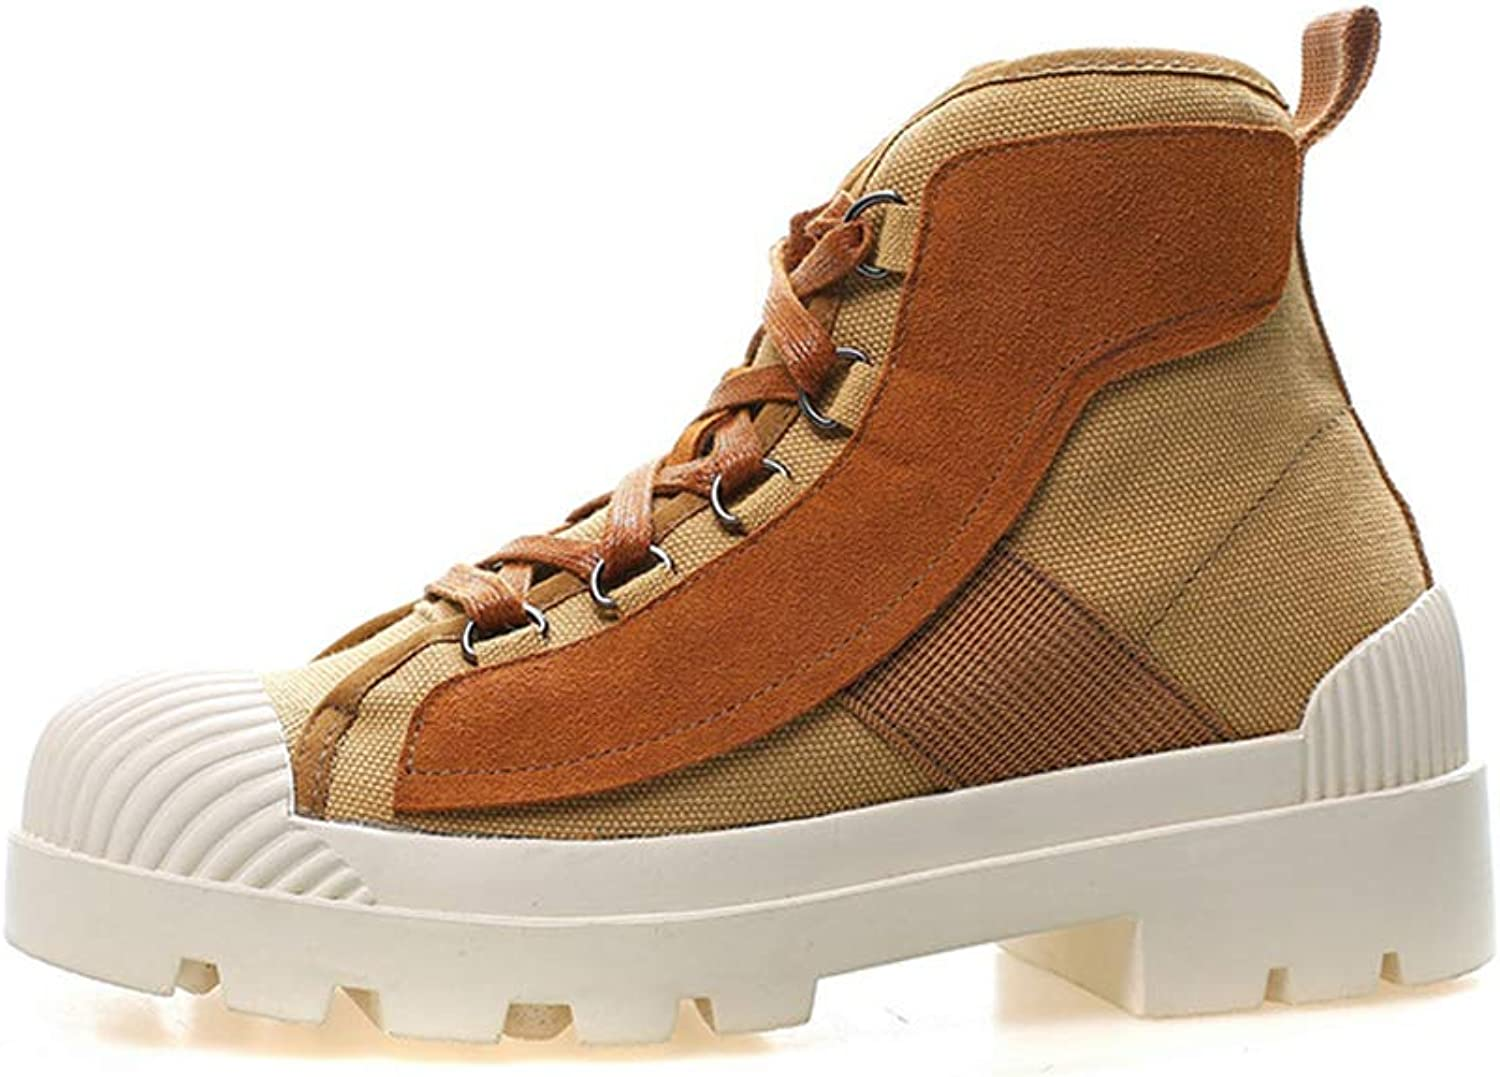 KAOKAOO Women's Lace up Mid Heel Work Combat Boots Fashion Ankle Bootie